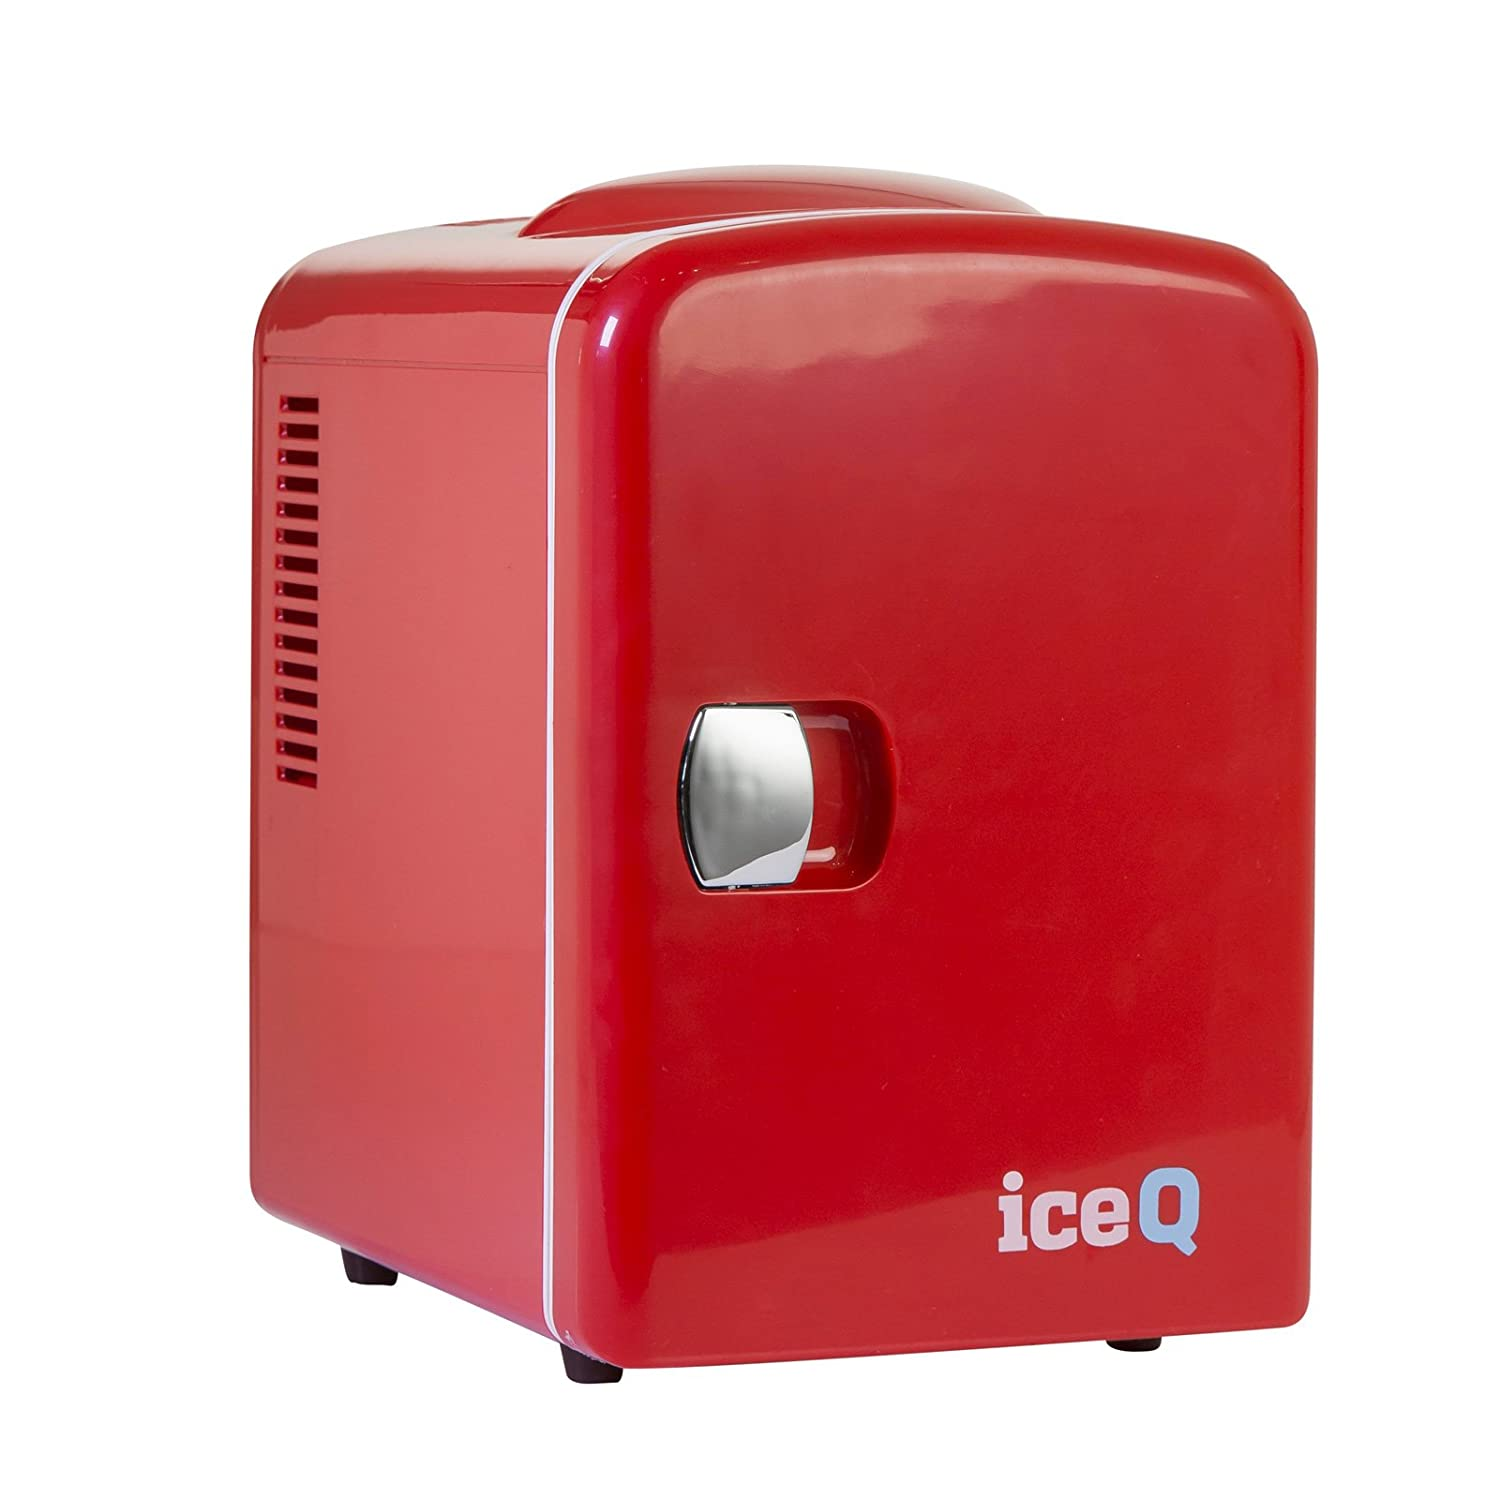 iceQ 4 Litre Small Mini Fridge Cooler - Red [Energy Class A] ICEQ4R